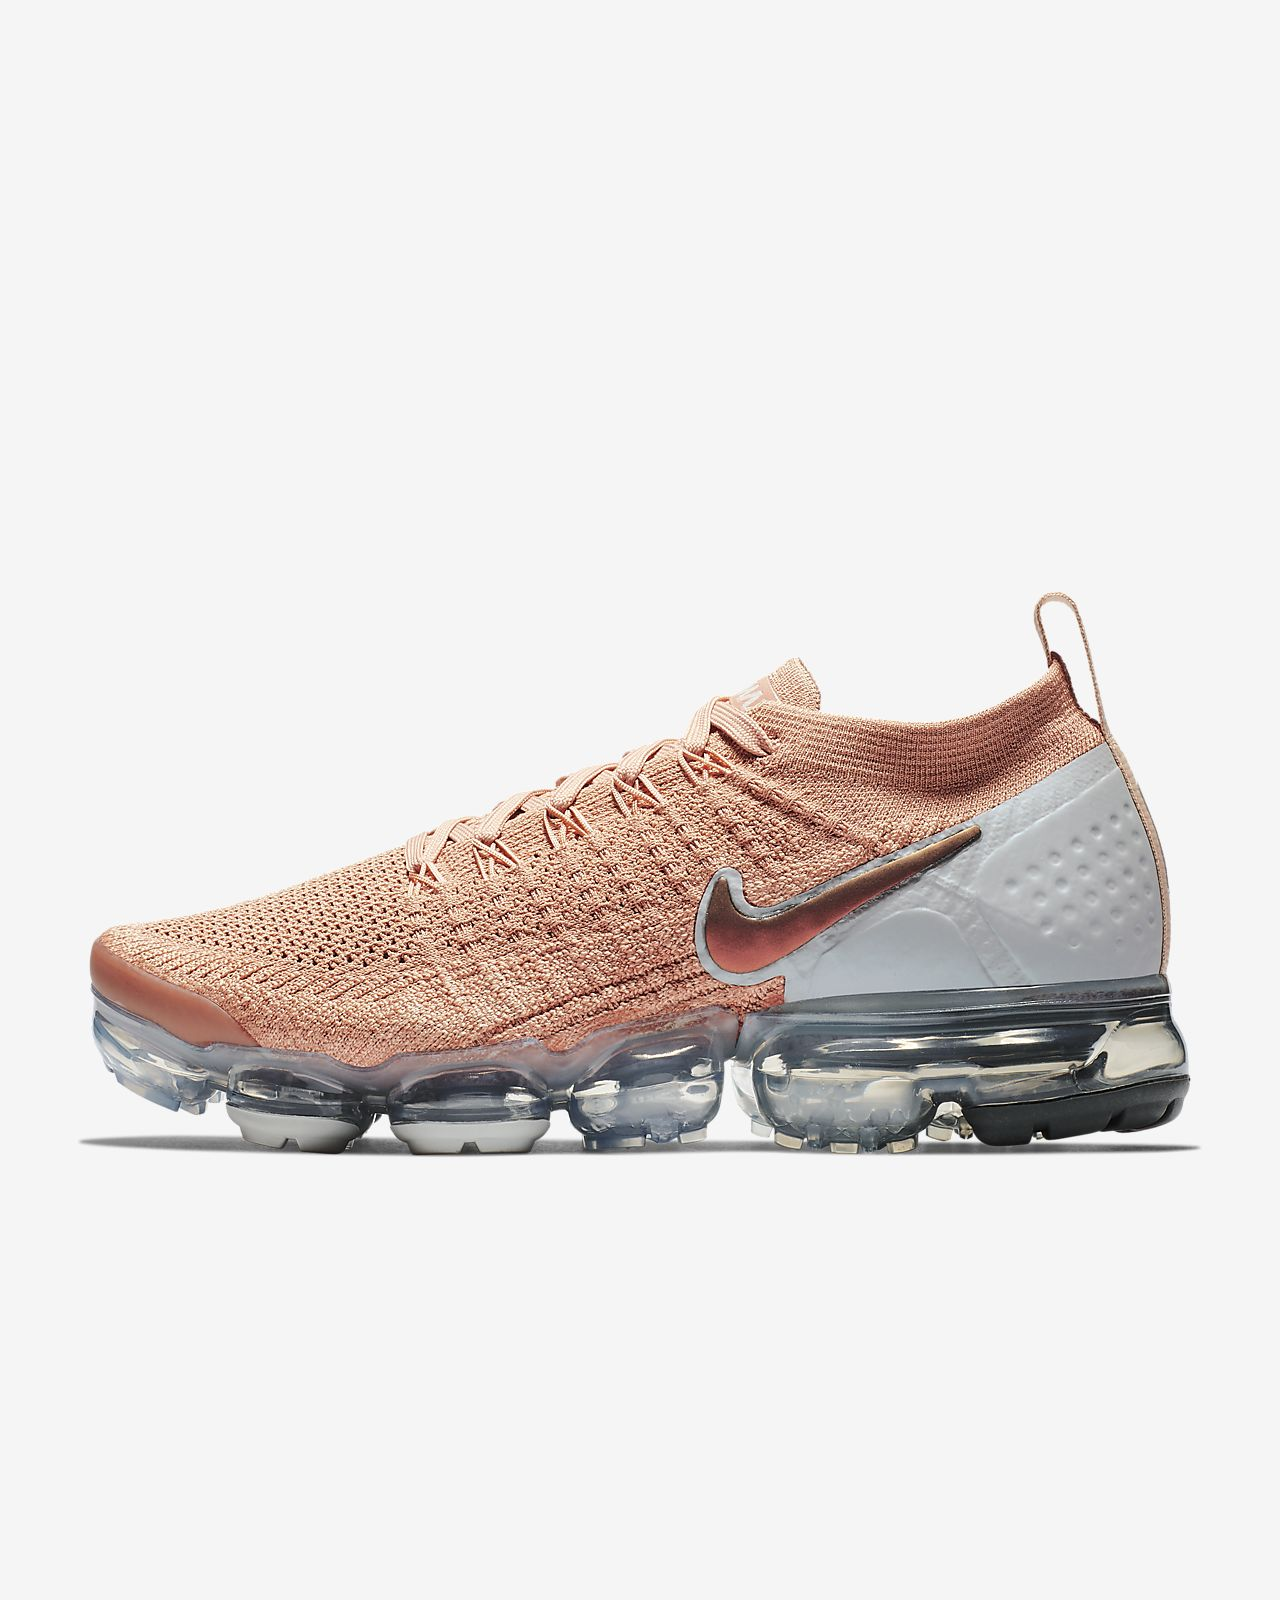 new product e9327 4ec46 ... Nike Air VaporMax Flyknit 2 Women s Shoe